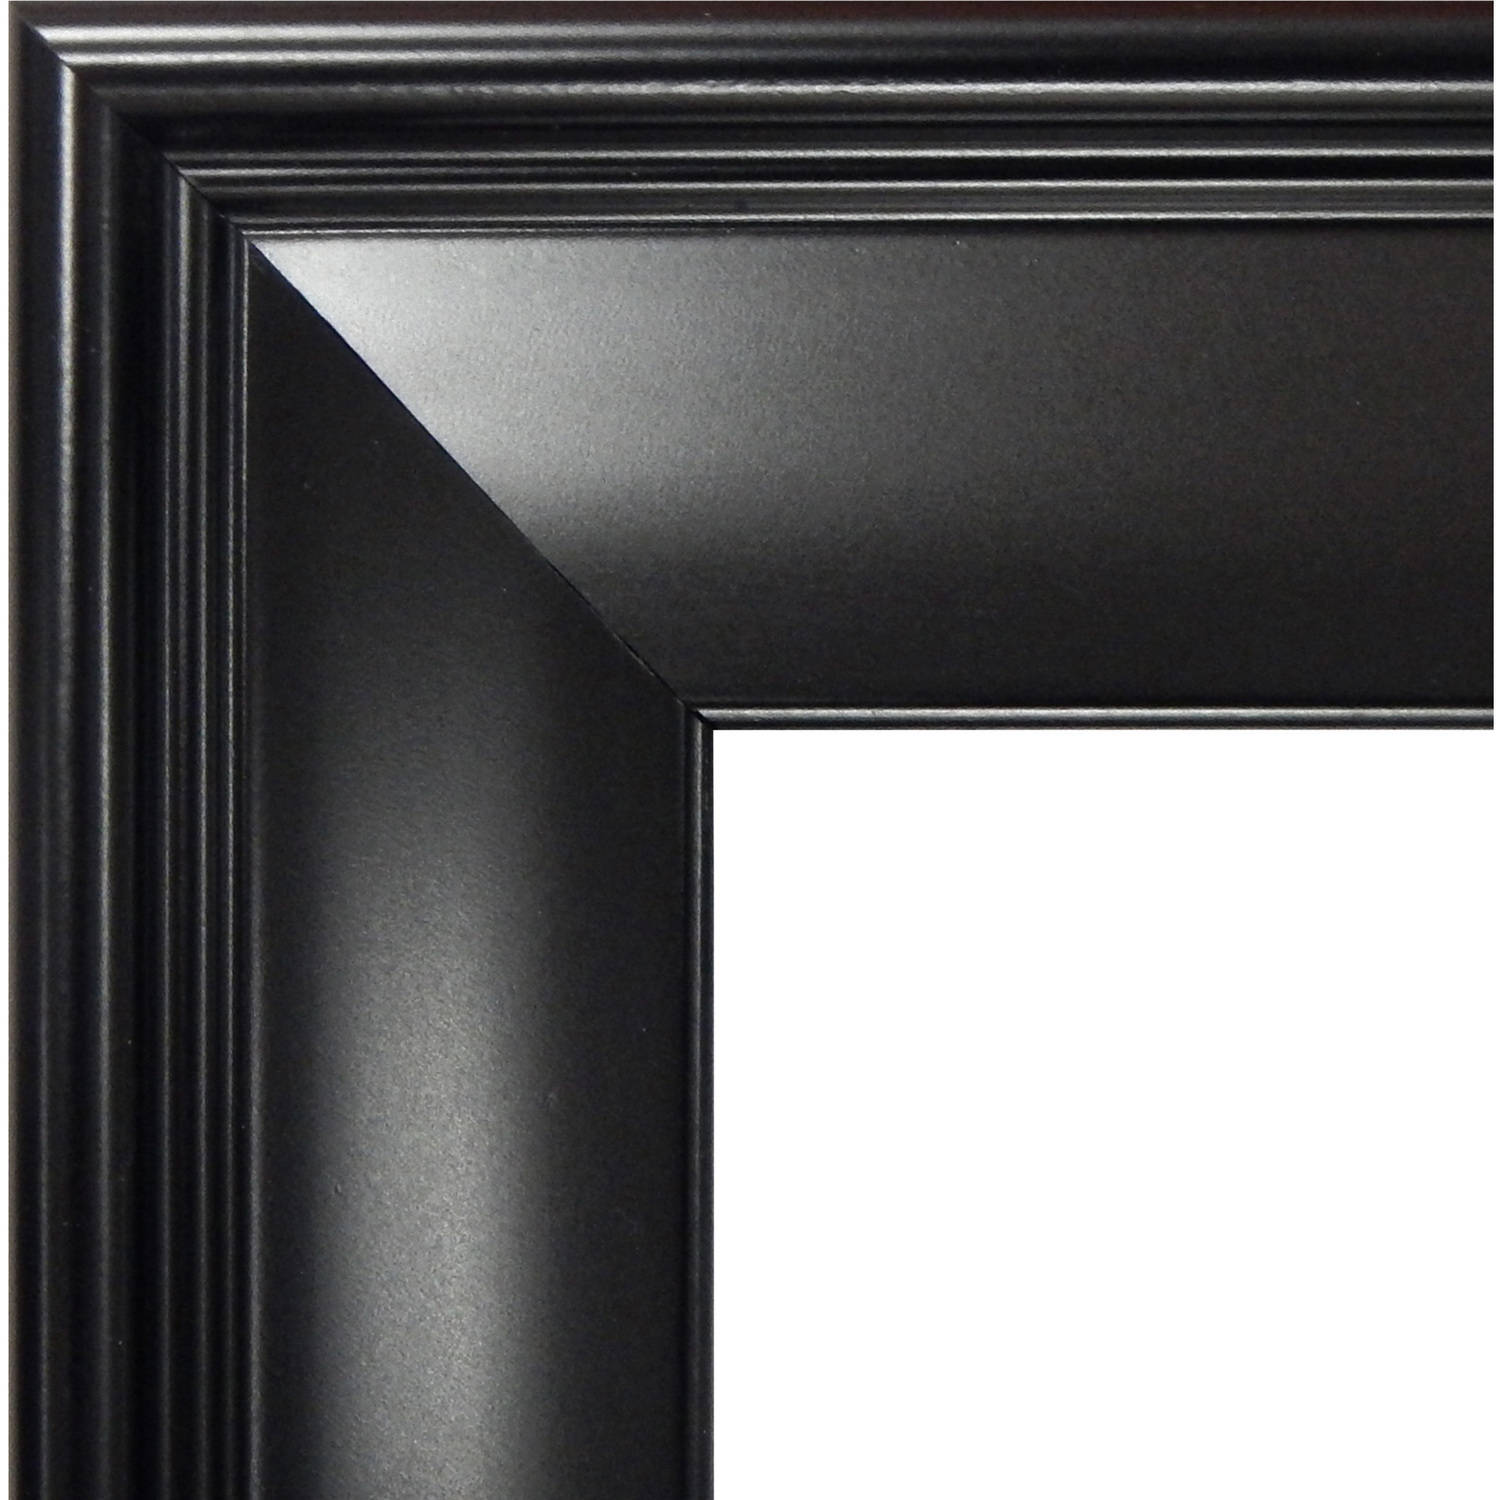 Mainstays 18x24 Casual Poster and Picture Frame, Black 44021716748 ...